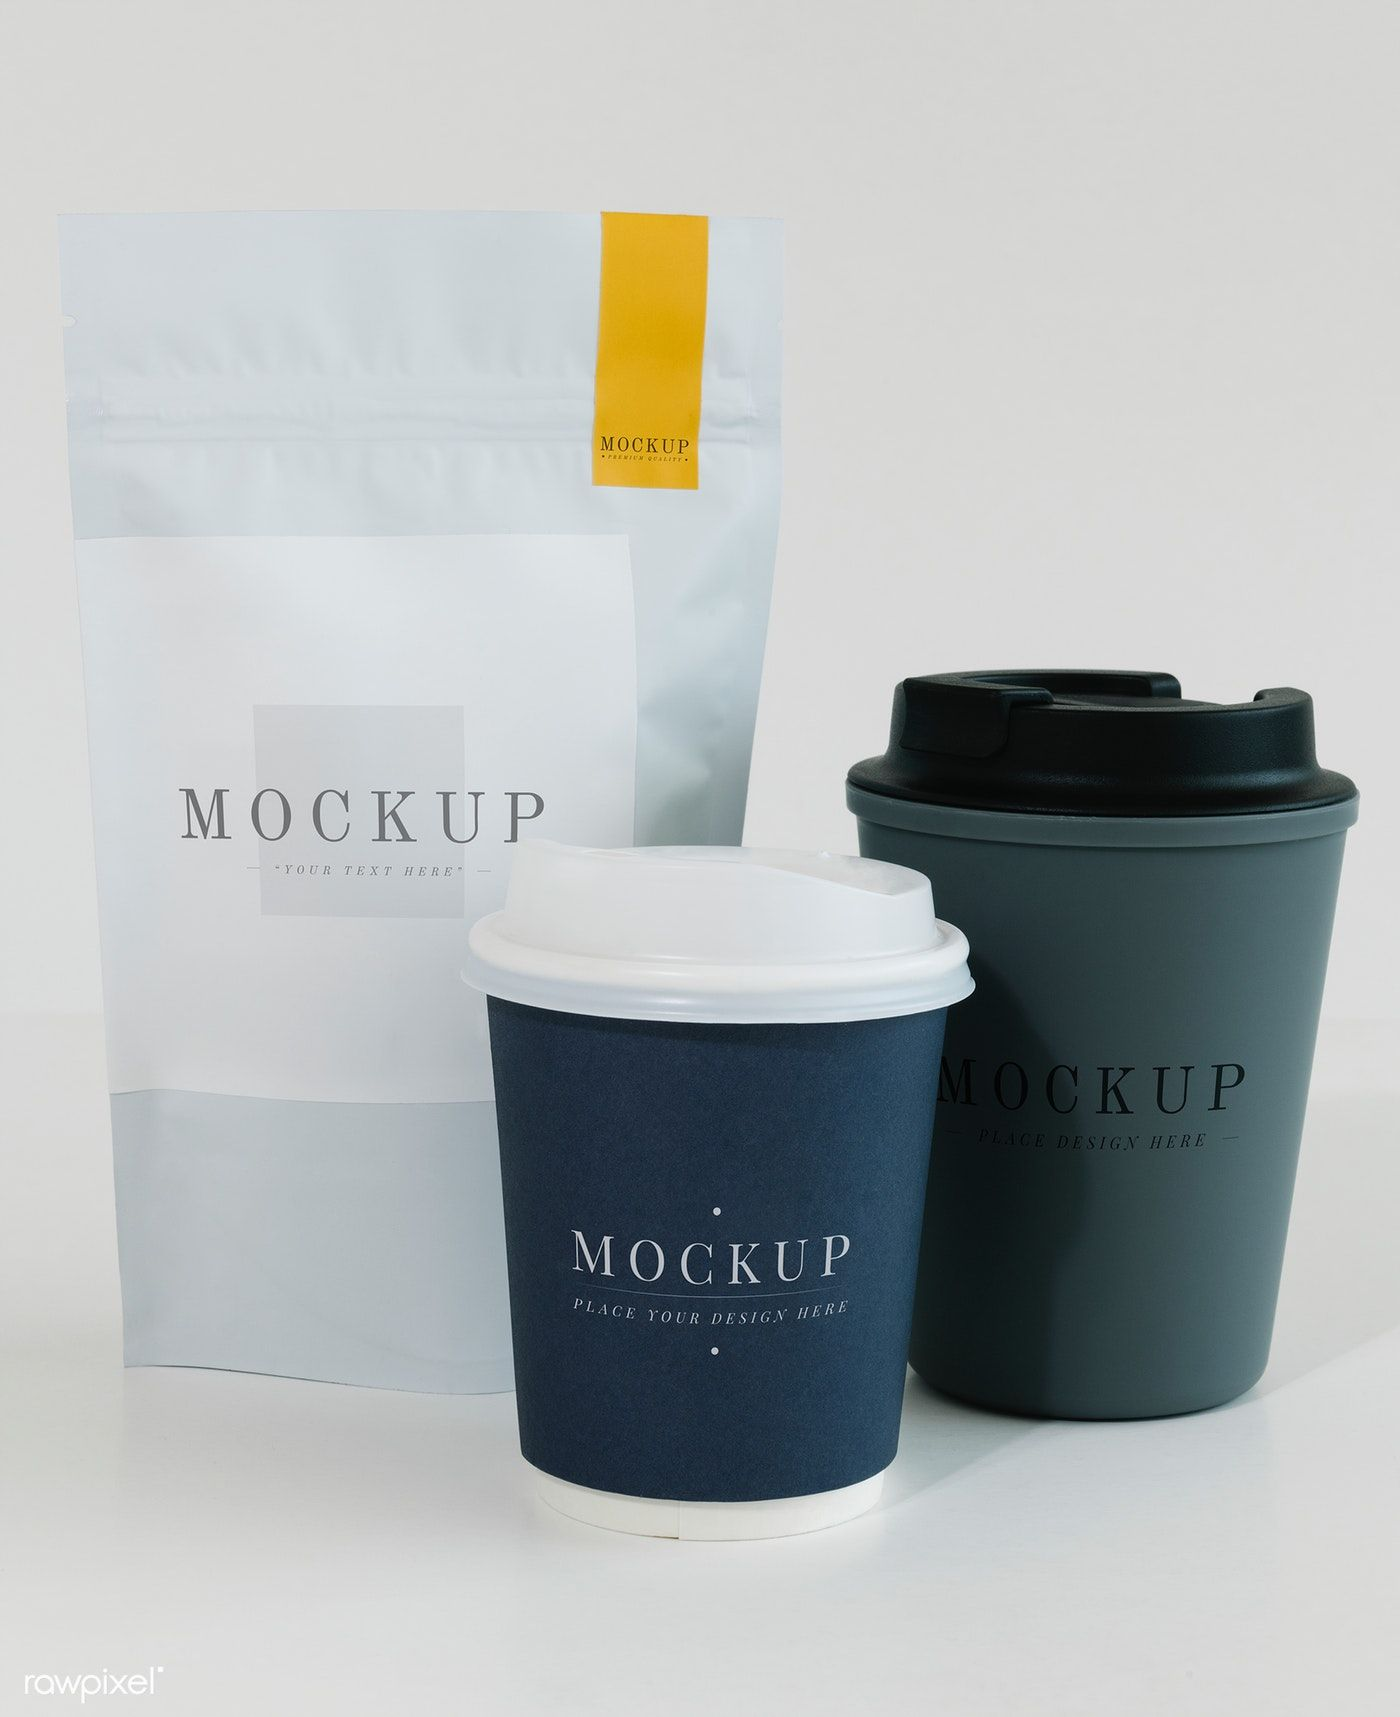 Download Packaging Mockup For A Coffee Shop Free Image By Rawpixel Com Coffee Shop Branding Coffee Cup Design Coffee Shop